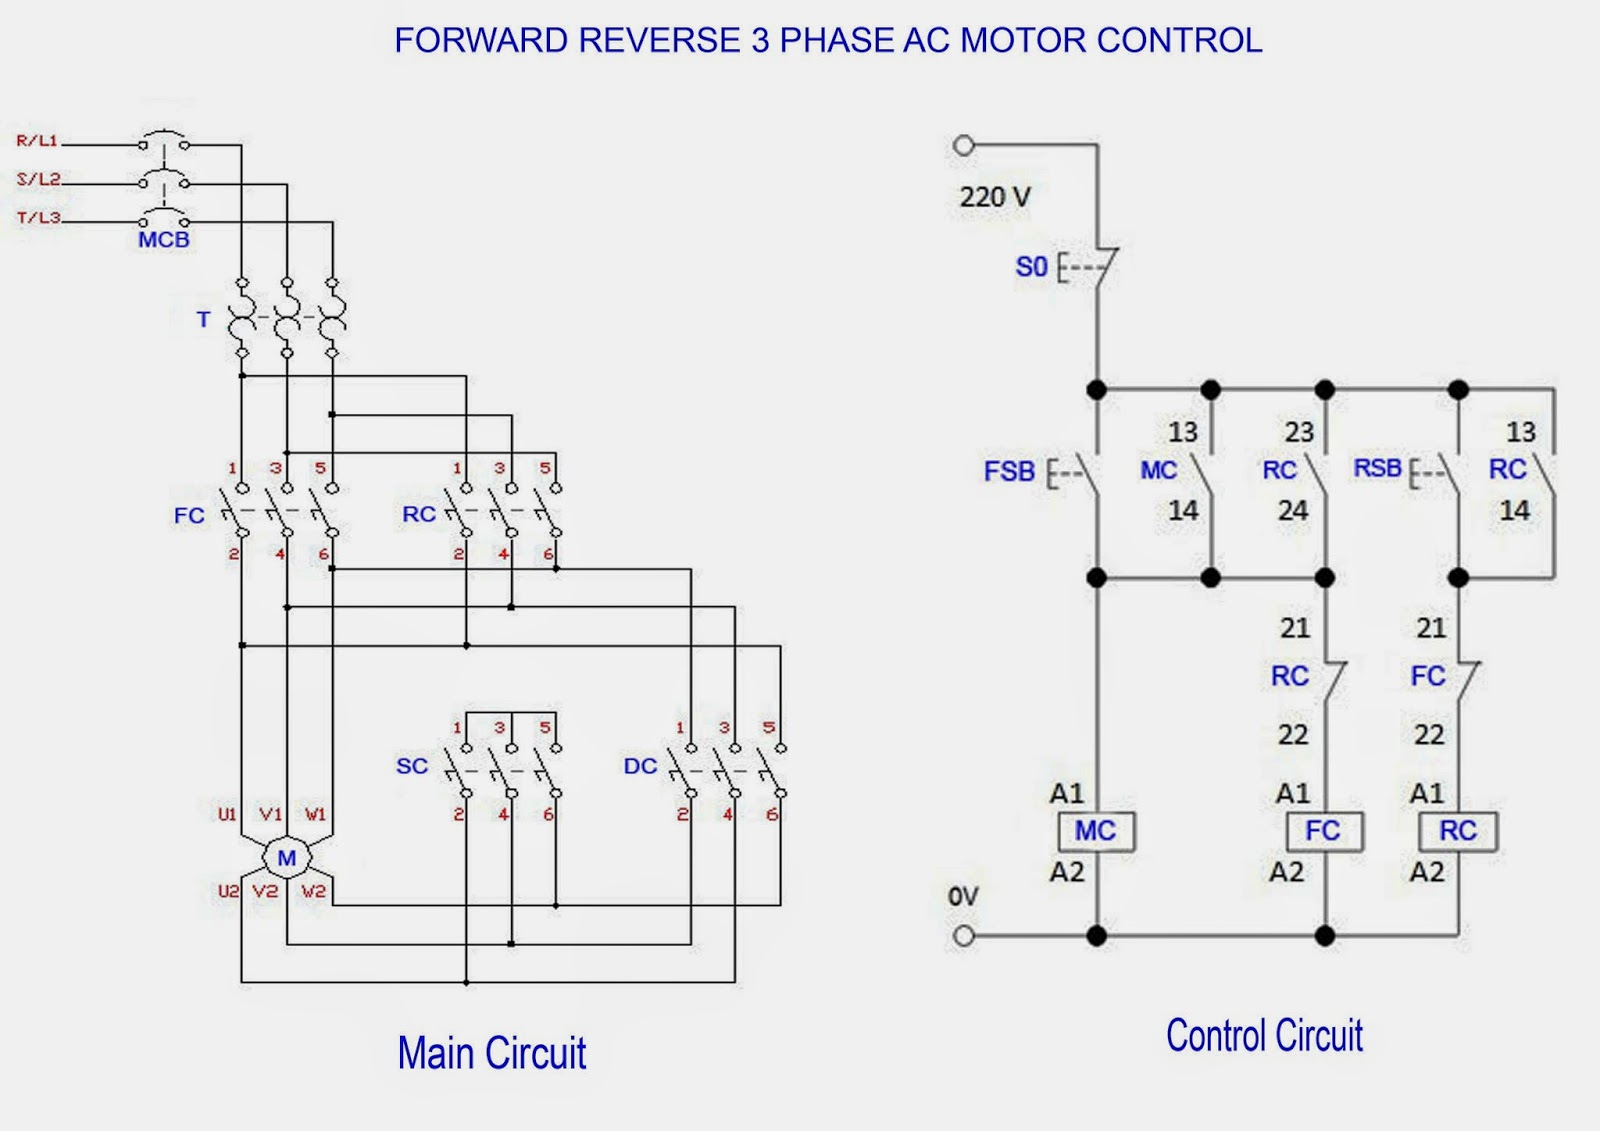 reversible motor wiring diagram control with A Single Phase Delta Motor Wiring on Dc Ammeter Wiring Diagram furthermore Fan Motor Wiring Further Dayton Electric Diagram together with Induction Motor Wiring Diagram moreover 120 Volt Reversing Motor Schematic in addition Single Phase Air  pressor Schematic.